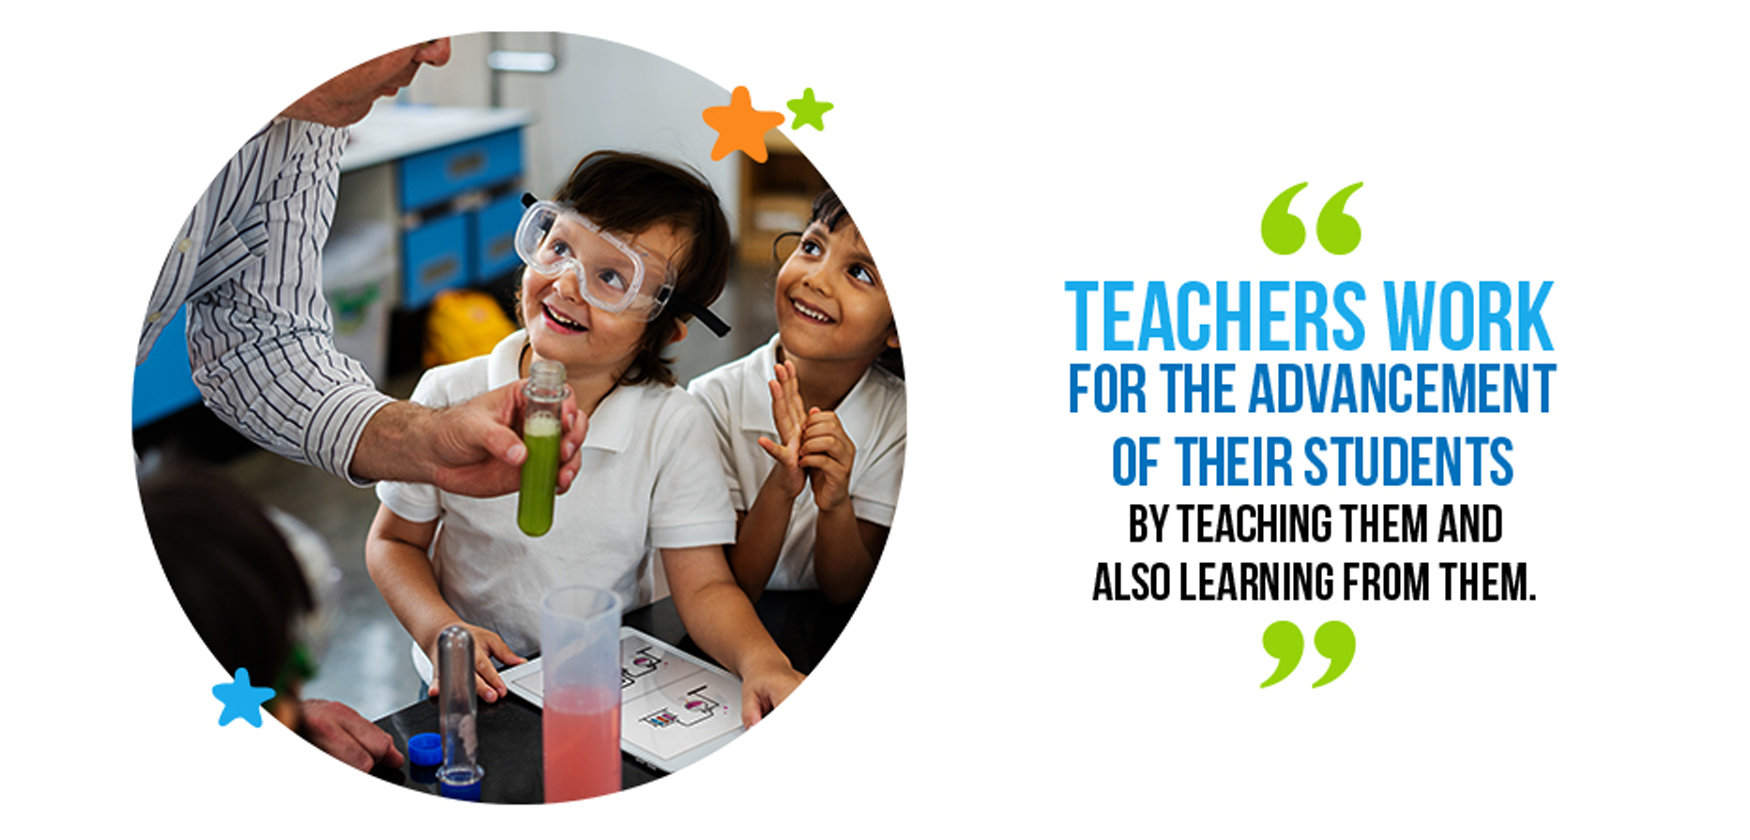 Effective teachers work for the advancement of their students